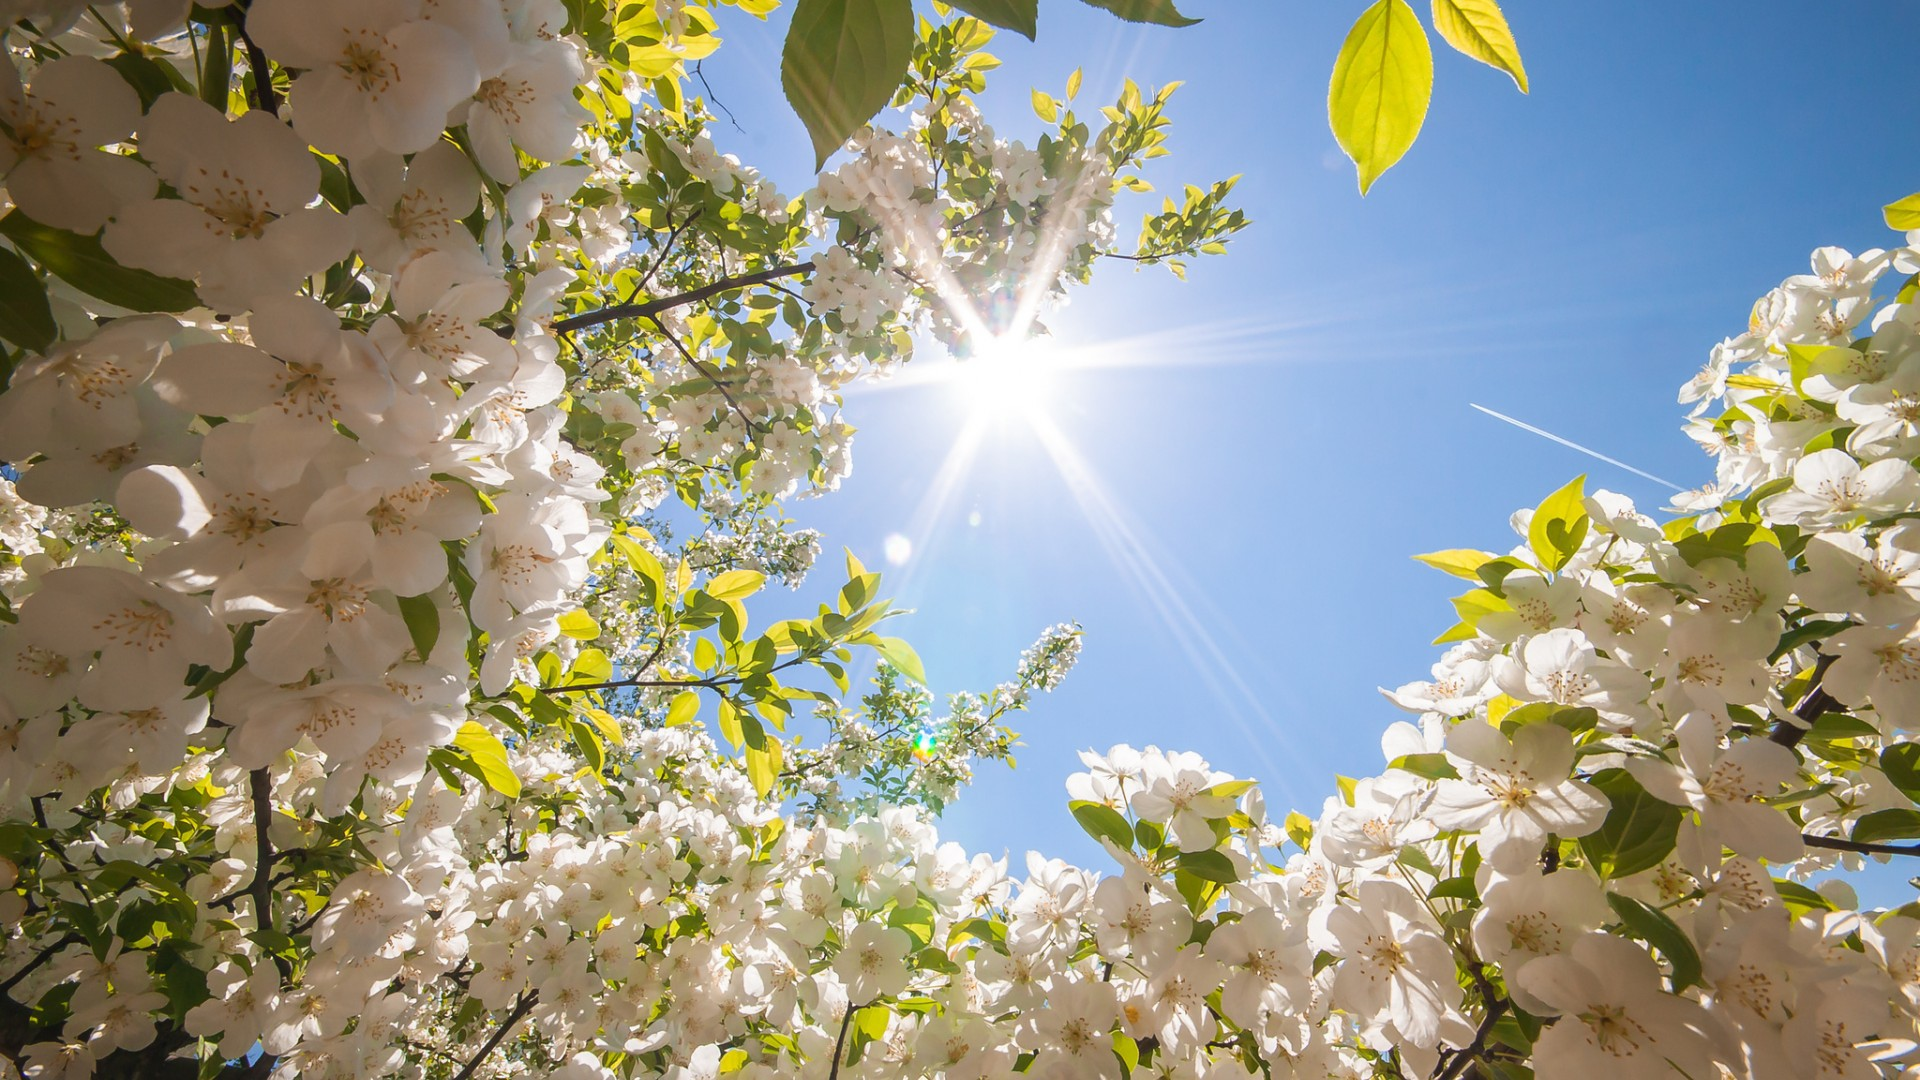 Hd Background Com: Spring Wallpapers Images Photos Pictures Backgrounds